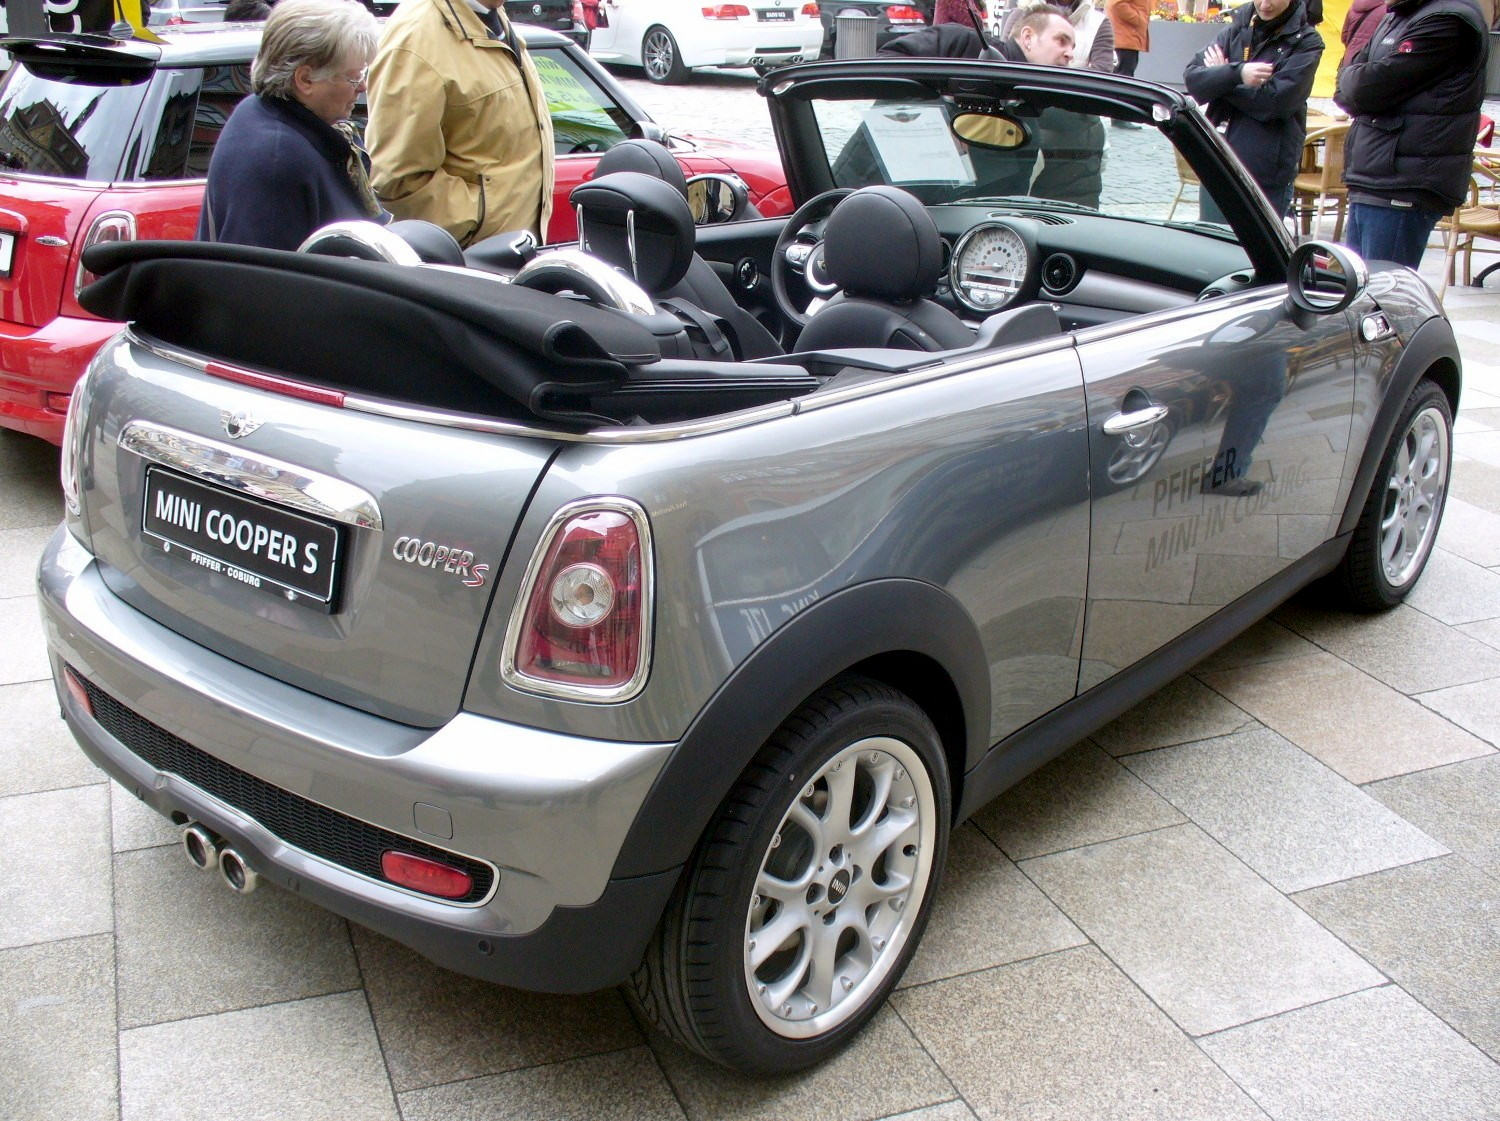 datei mini r56 cooper s cabrio darksilver heck jpg wikipedia. Black Bedroom Furniture Sets. Home Design Ideas